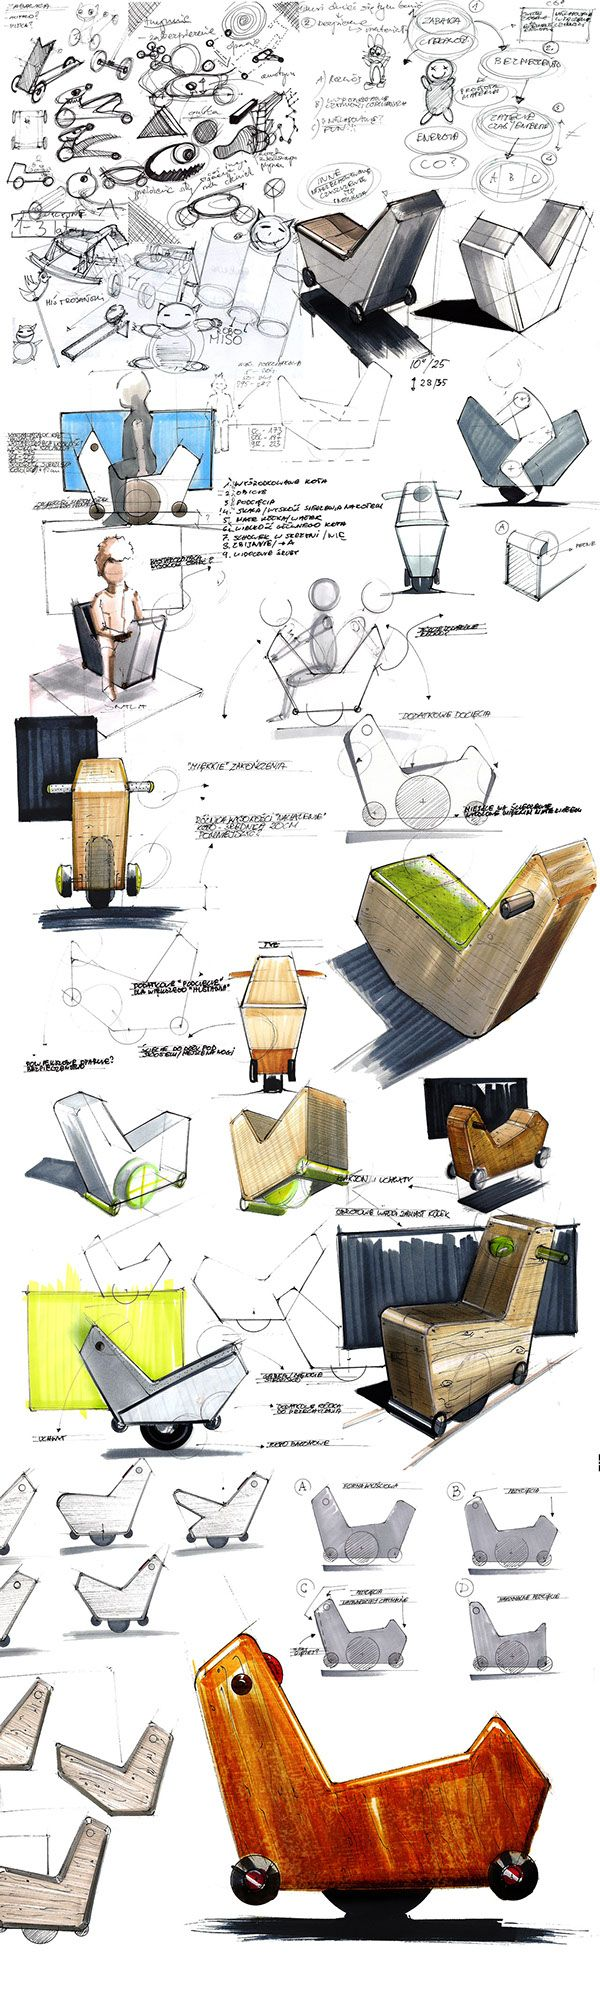 sketches vol.1 on Behance